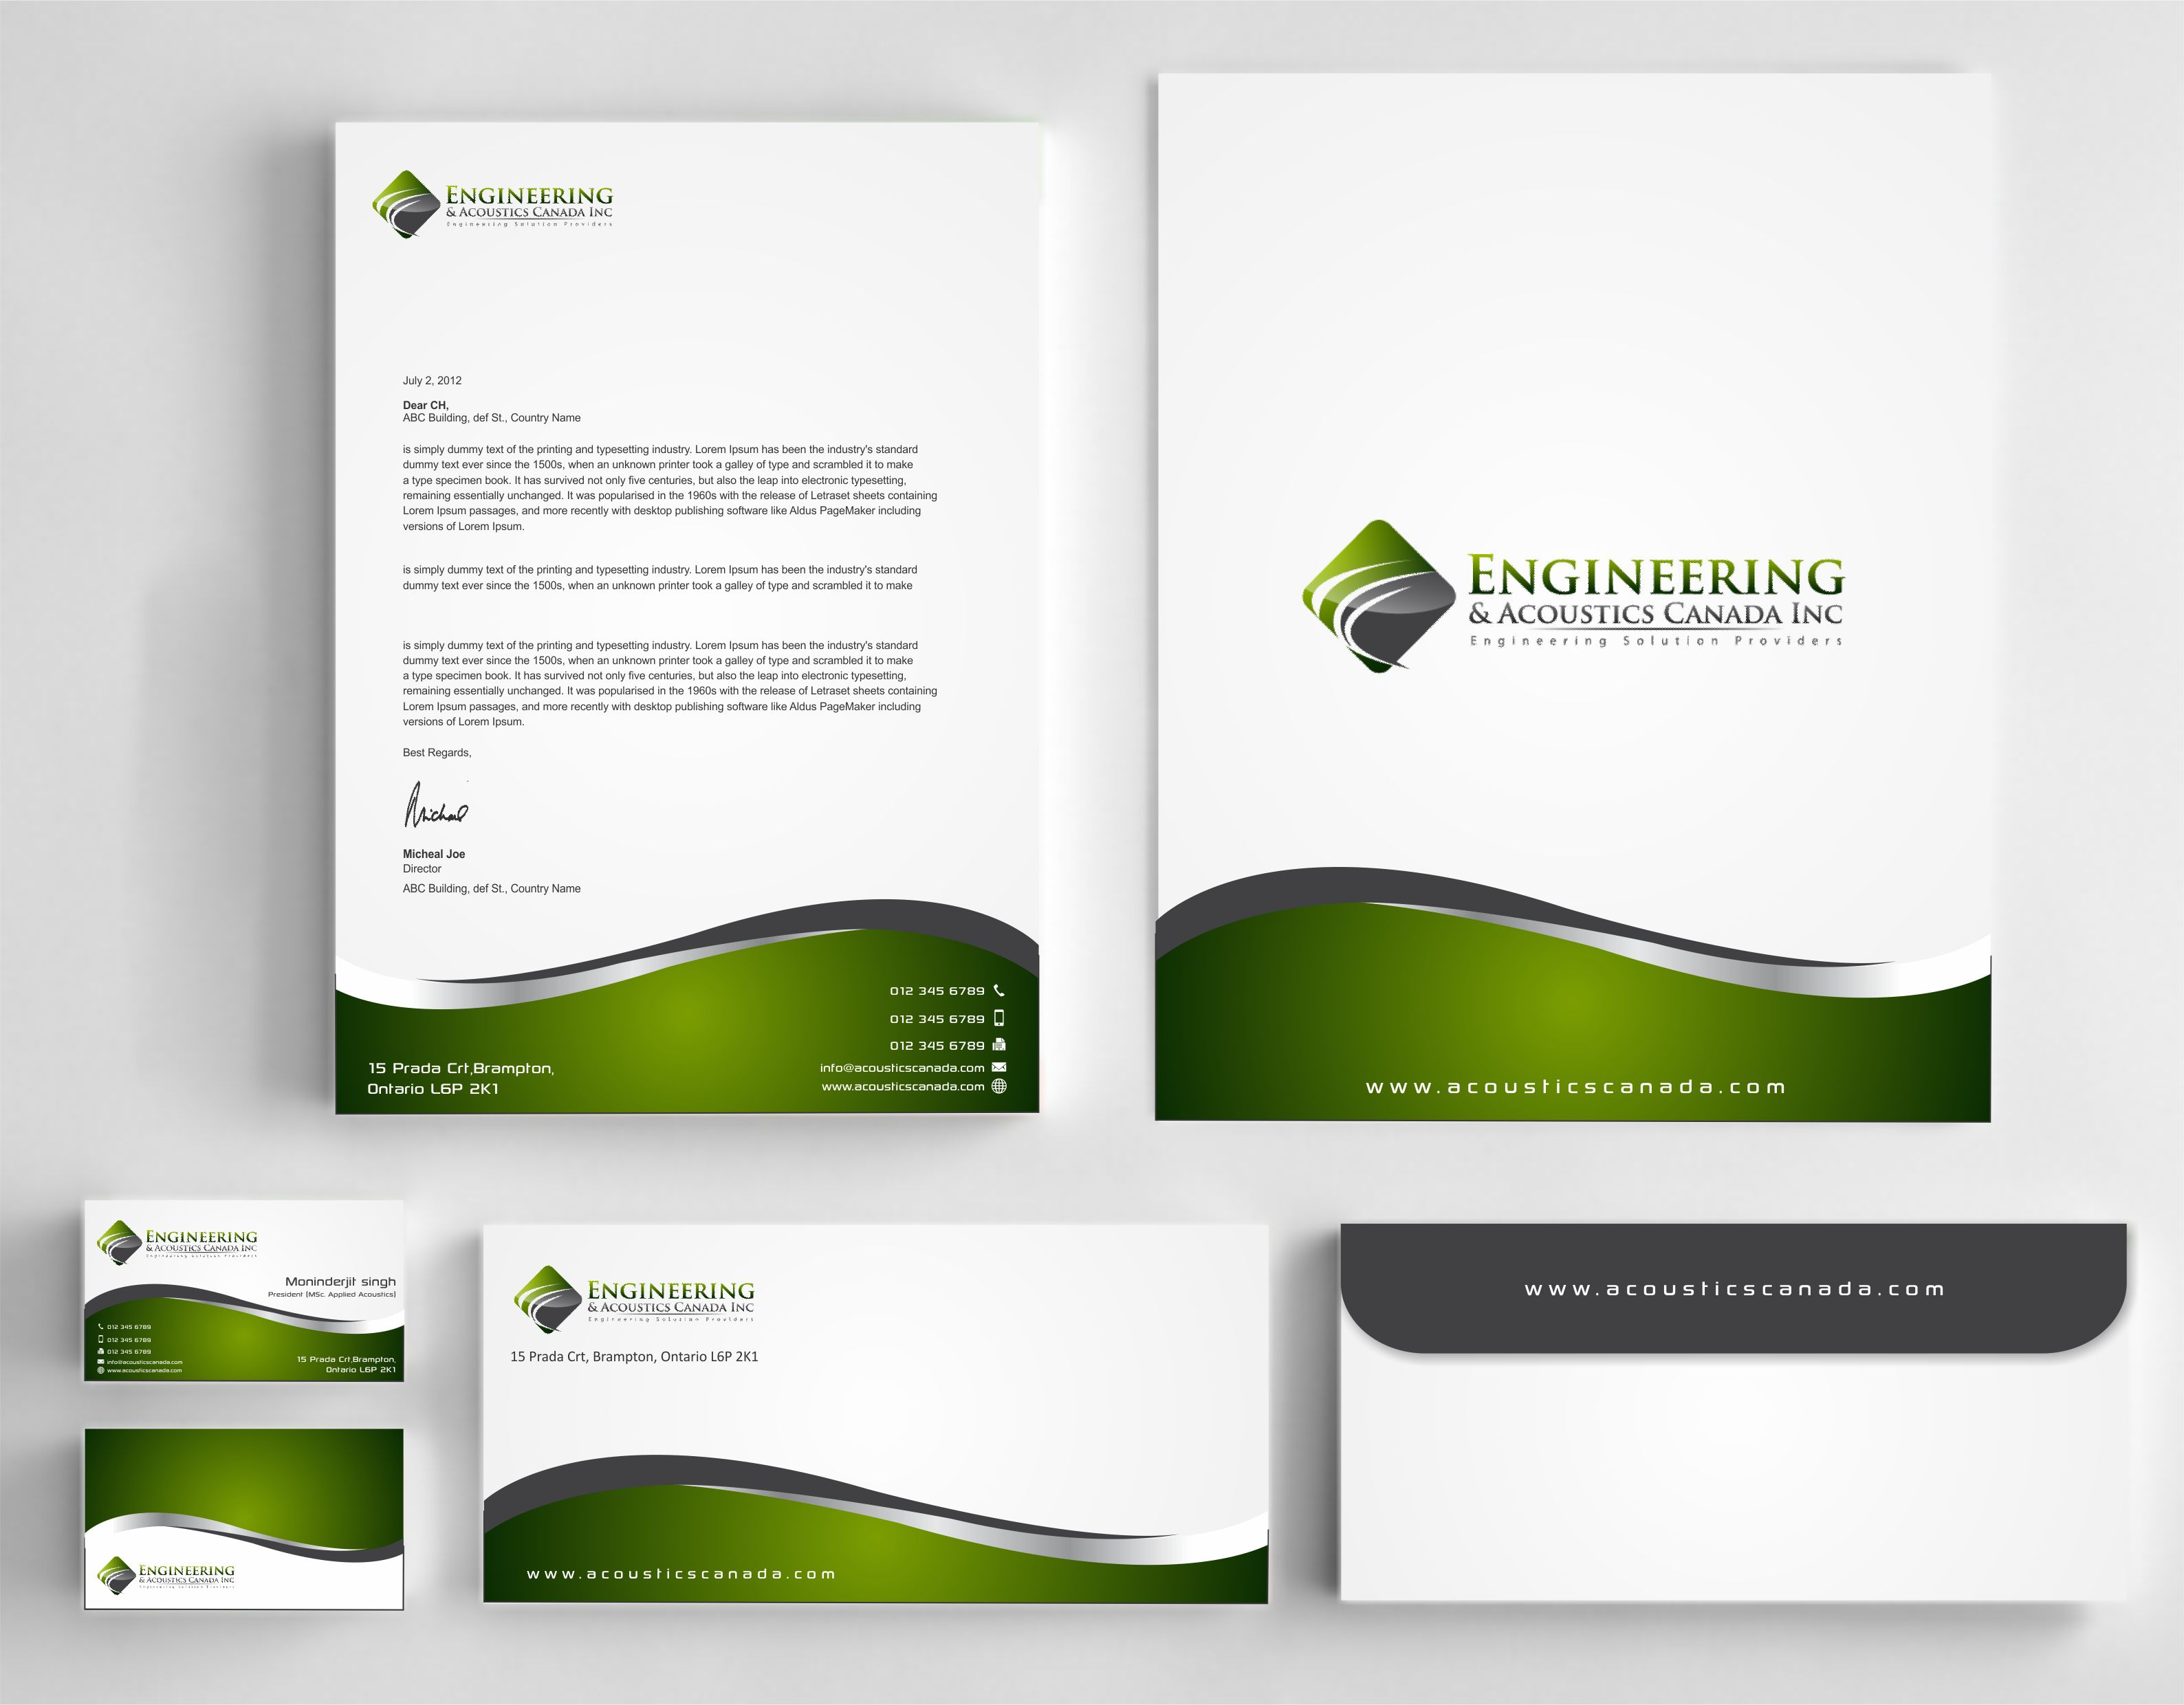 Stationary For Engineering & Consultancy Company - Consulting